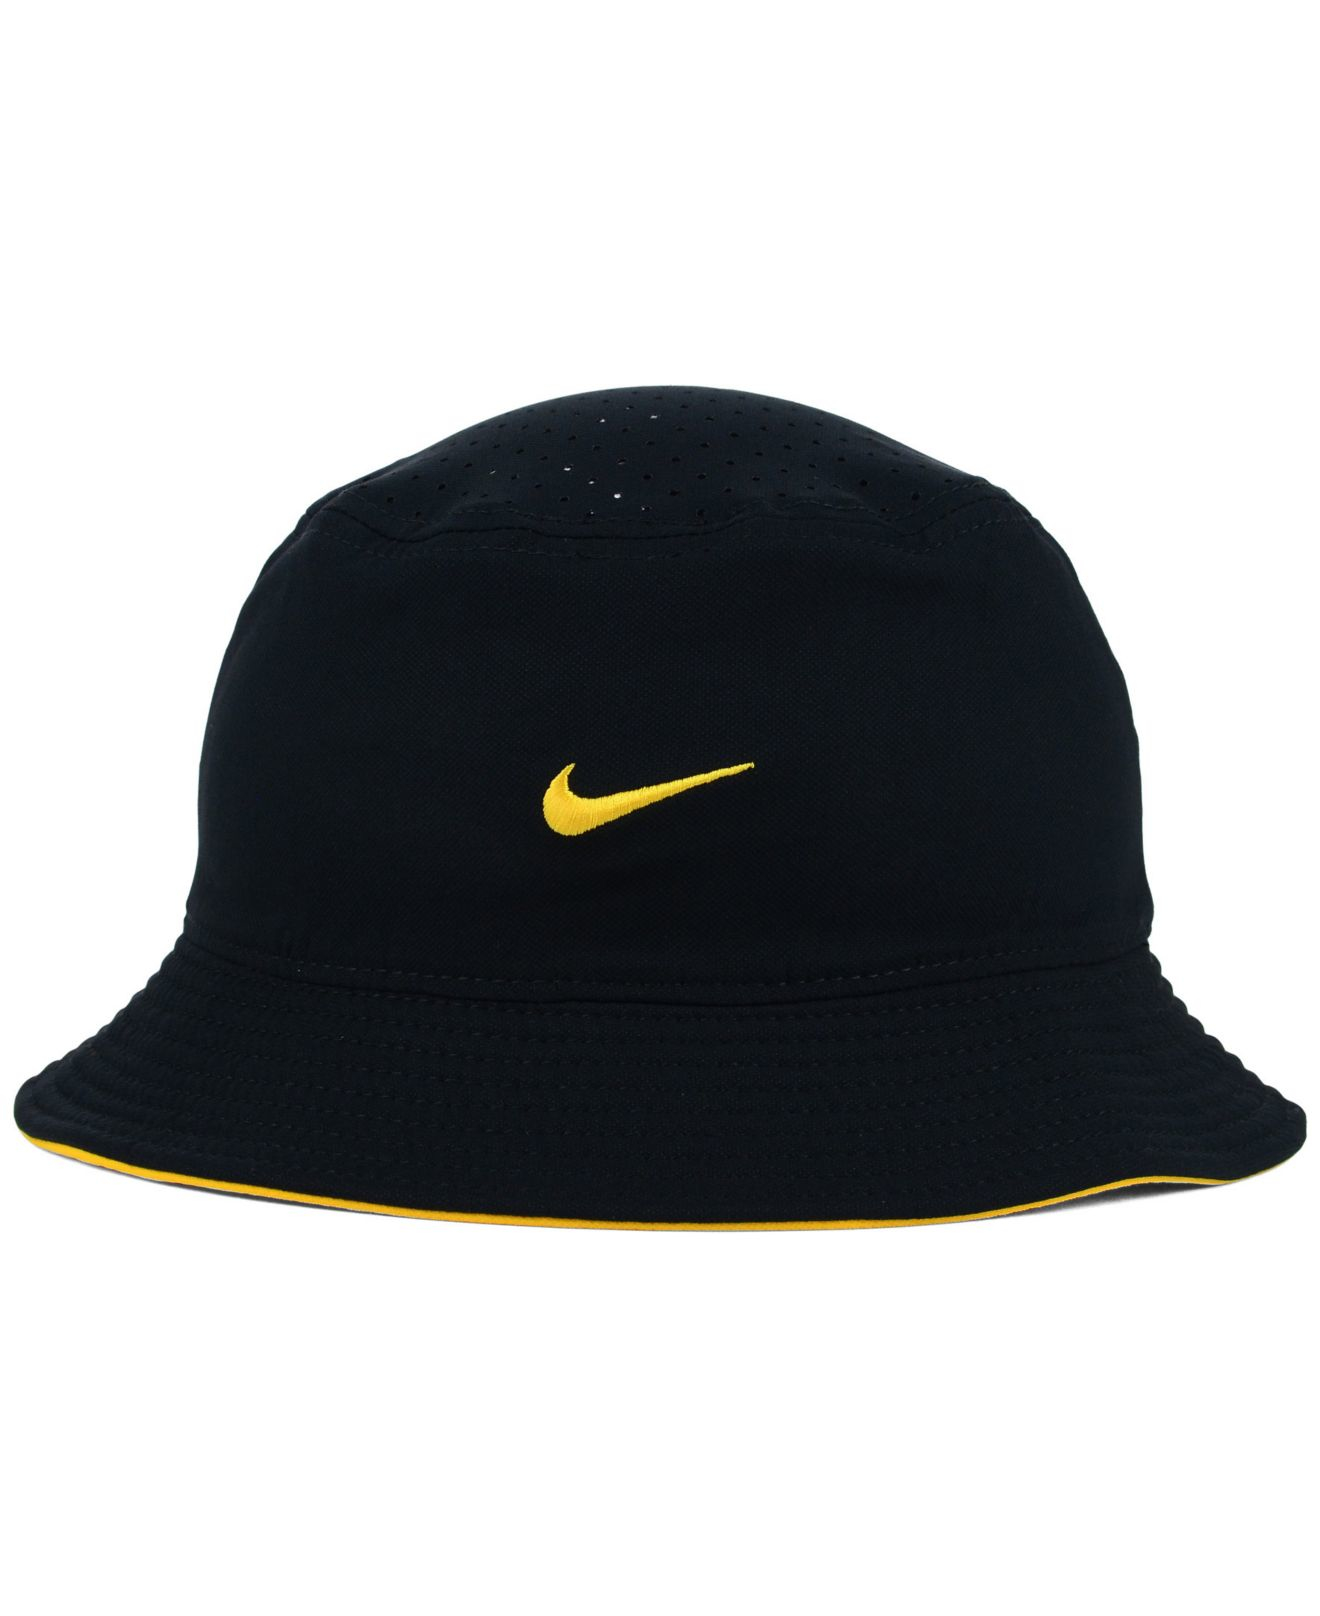 newest 73a19 9e4a5 ... where to buy lyst nike pittsburgh pirates vapor dri fit bucket hat in  black for men